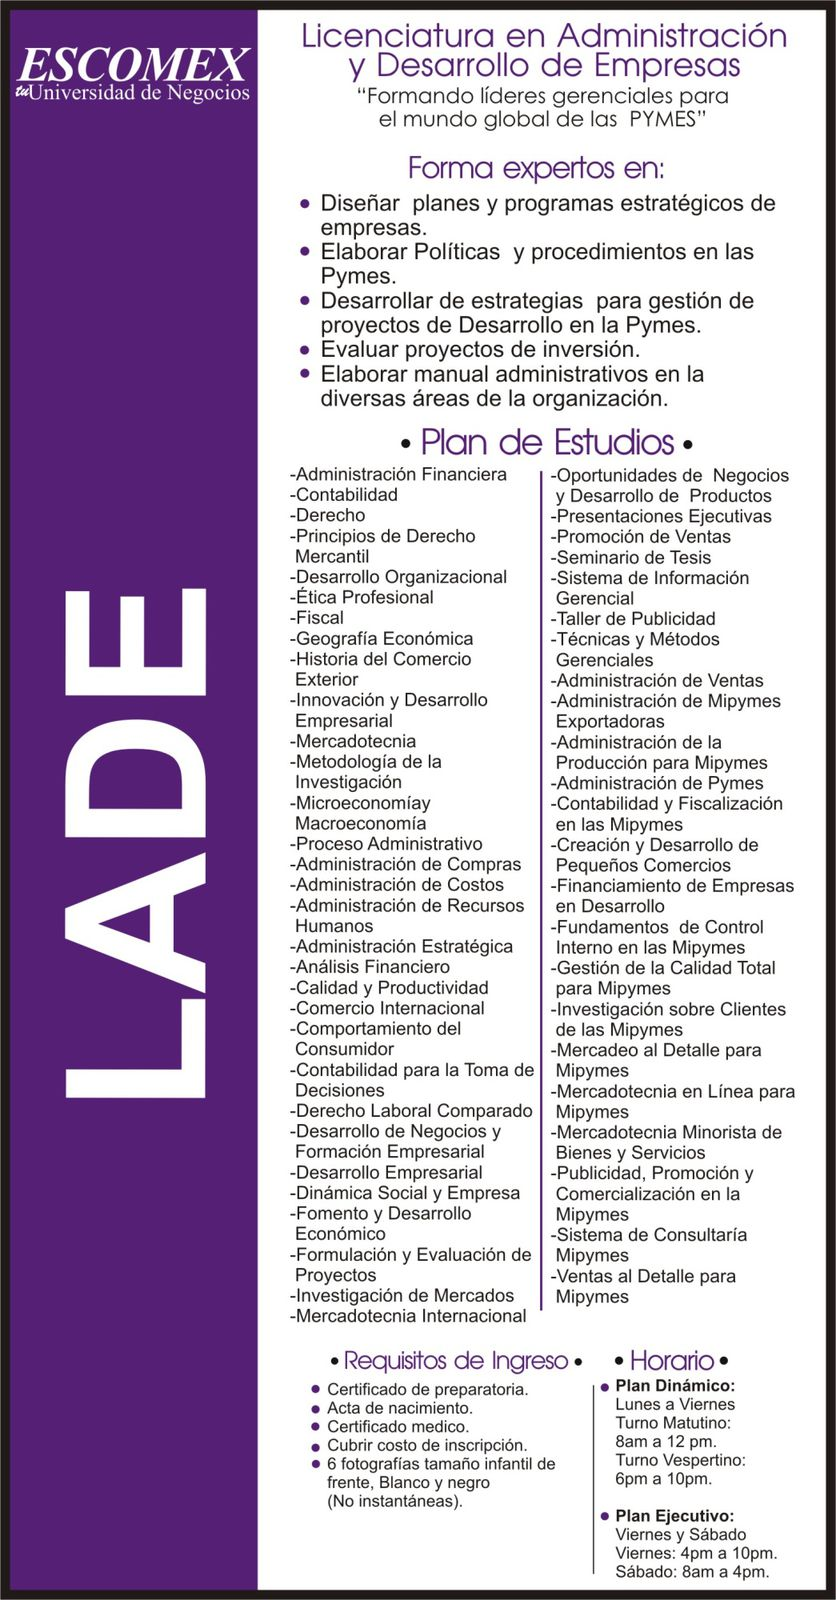 LADE4